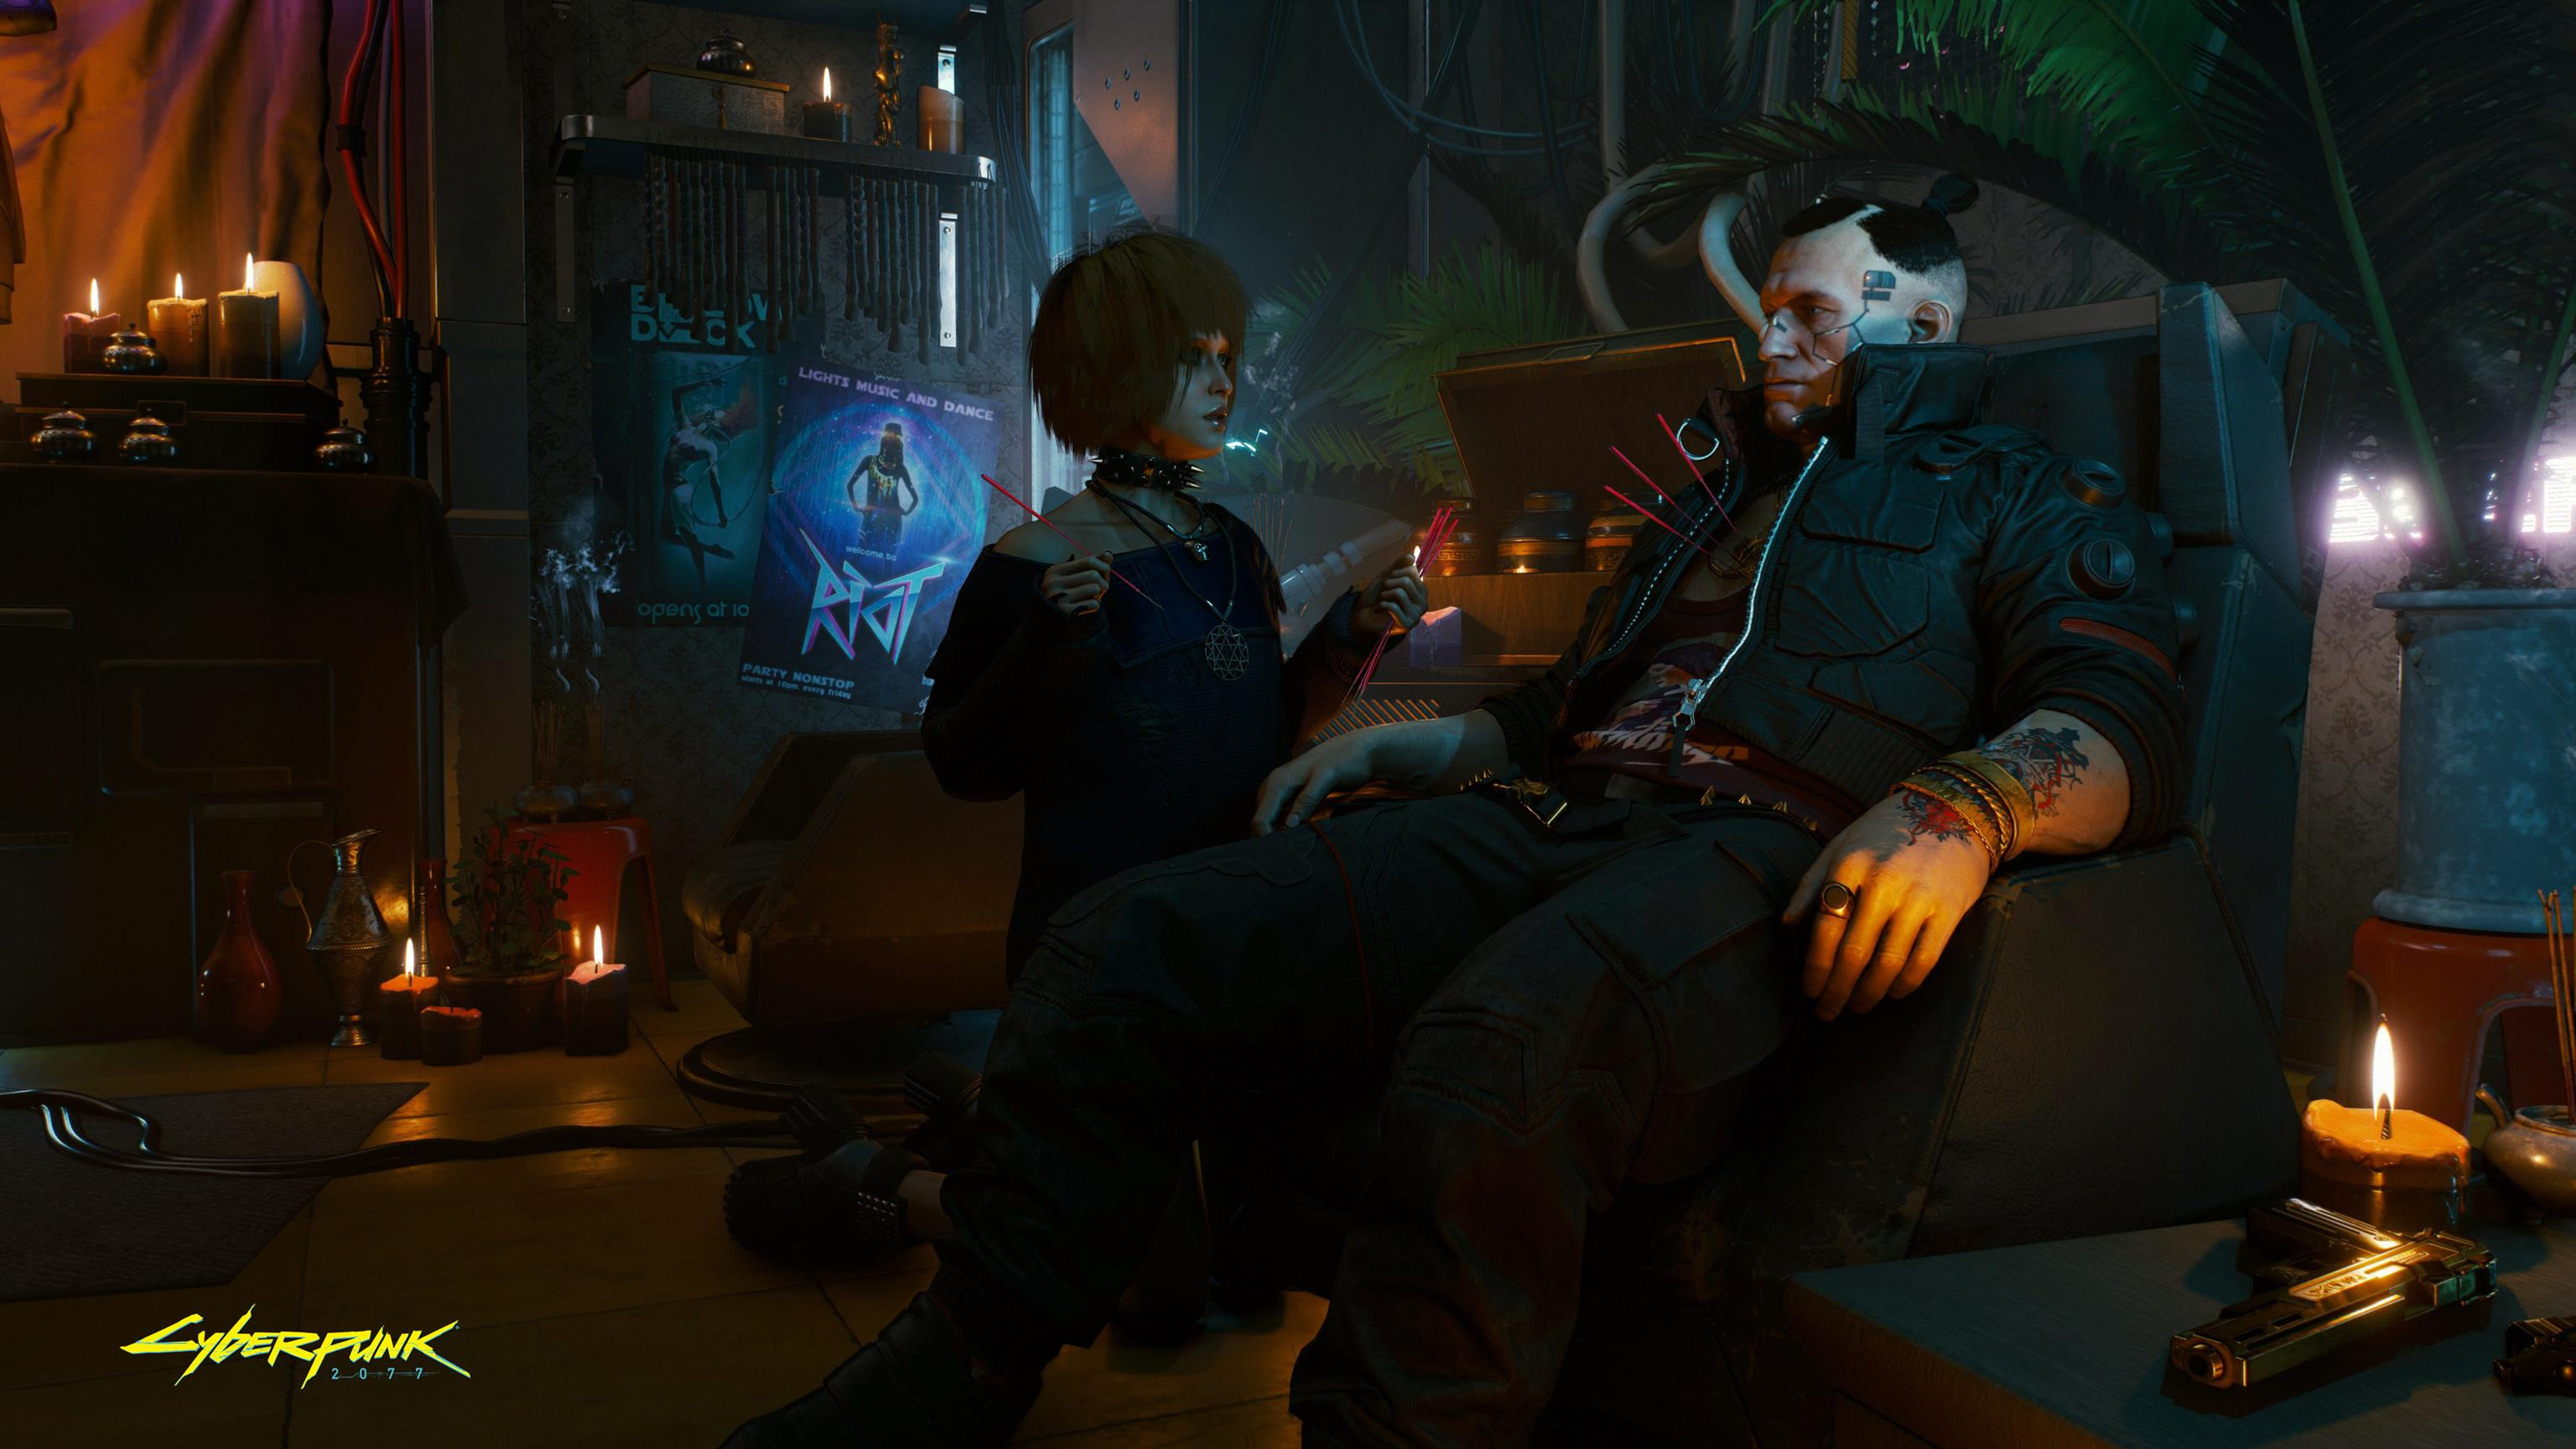 Check out these new Cyberpunk 2077 screenshots - VG247